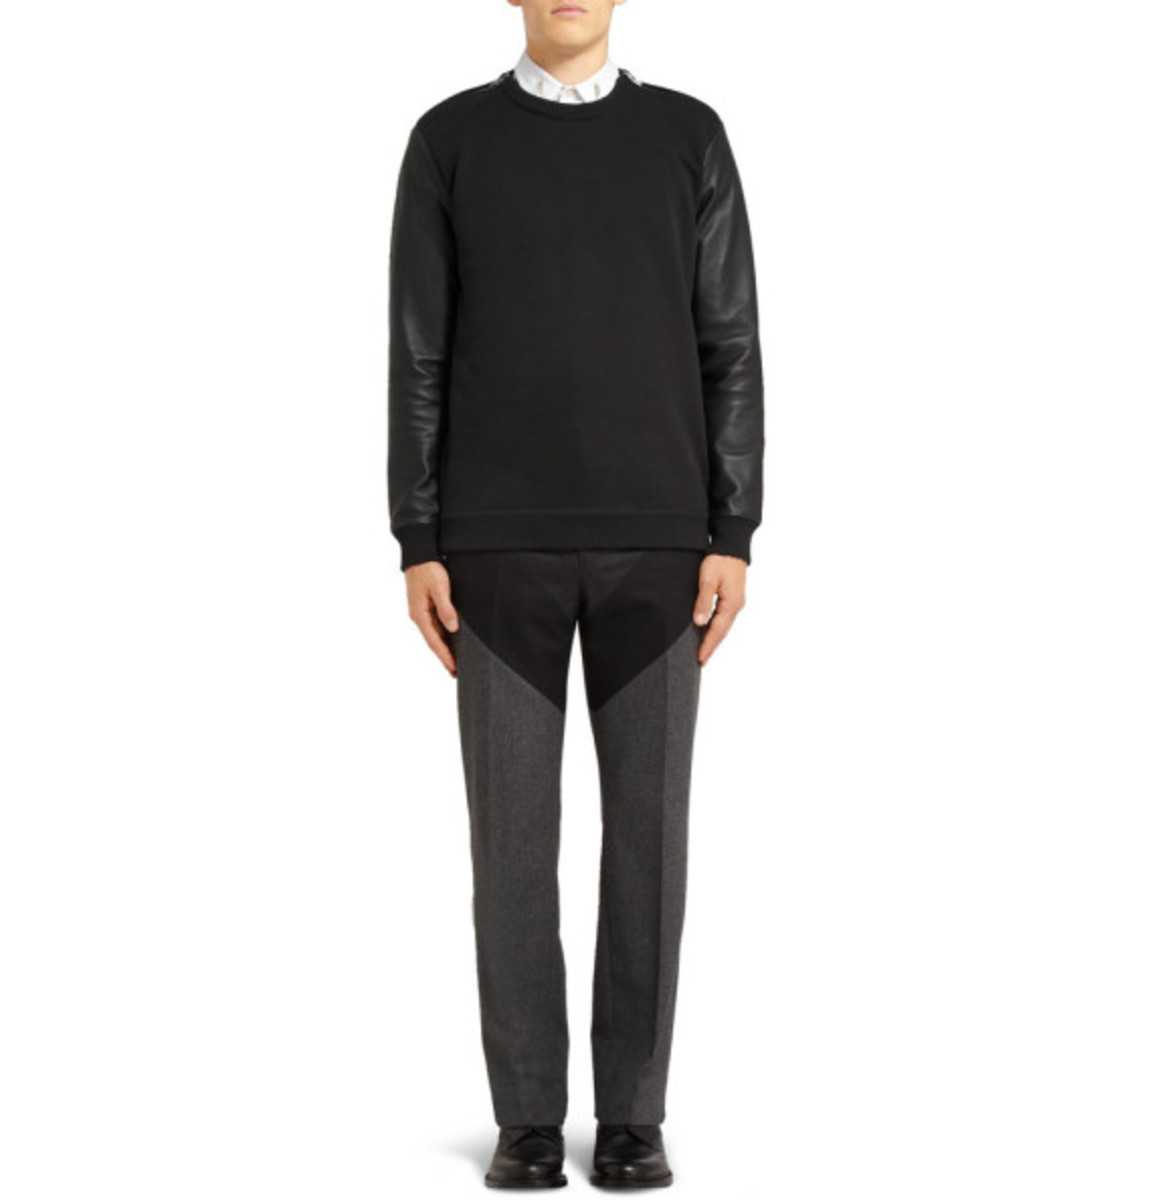 givenchy-leather-sleeved-cotton-sweater-06